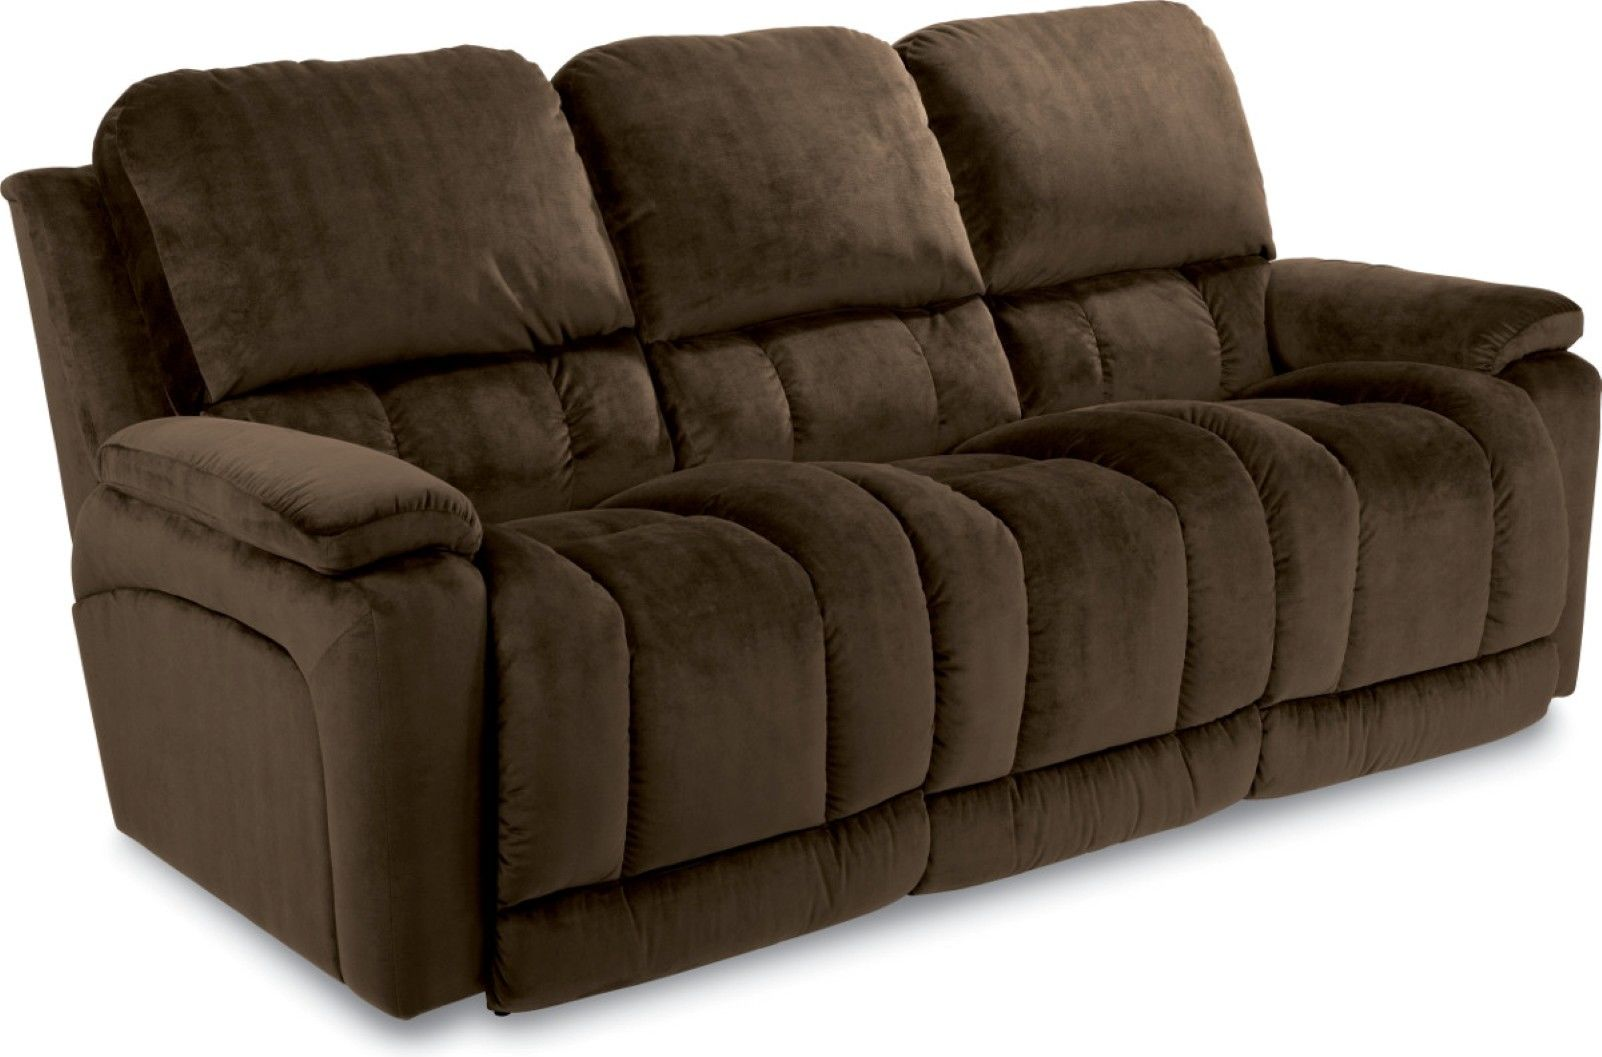 beautiful contemporary sofa bed collection-Lovely Contemporary sofa Bed Picture